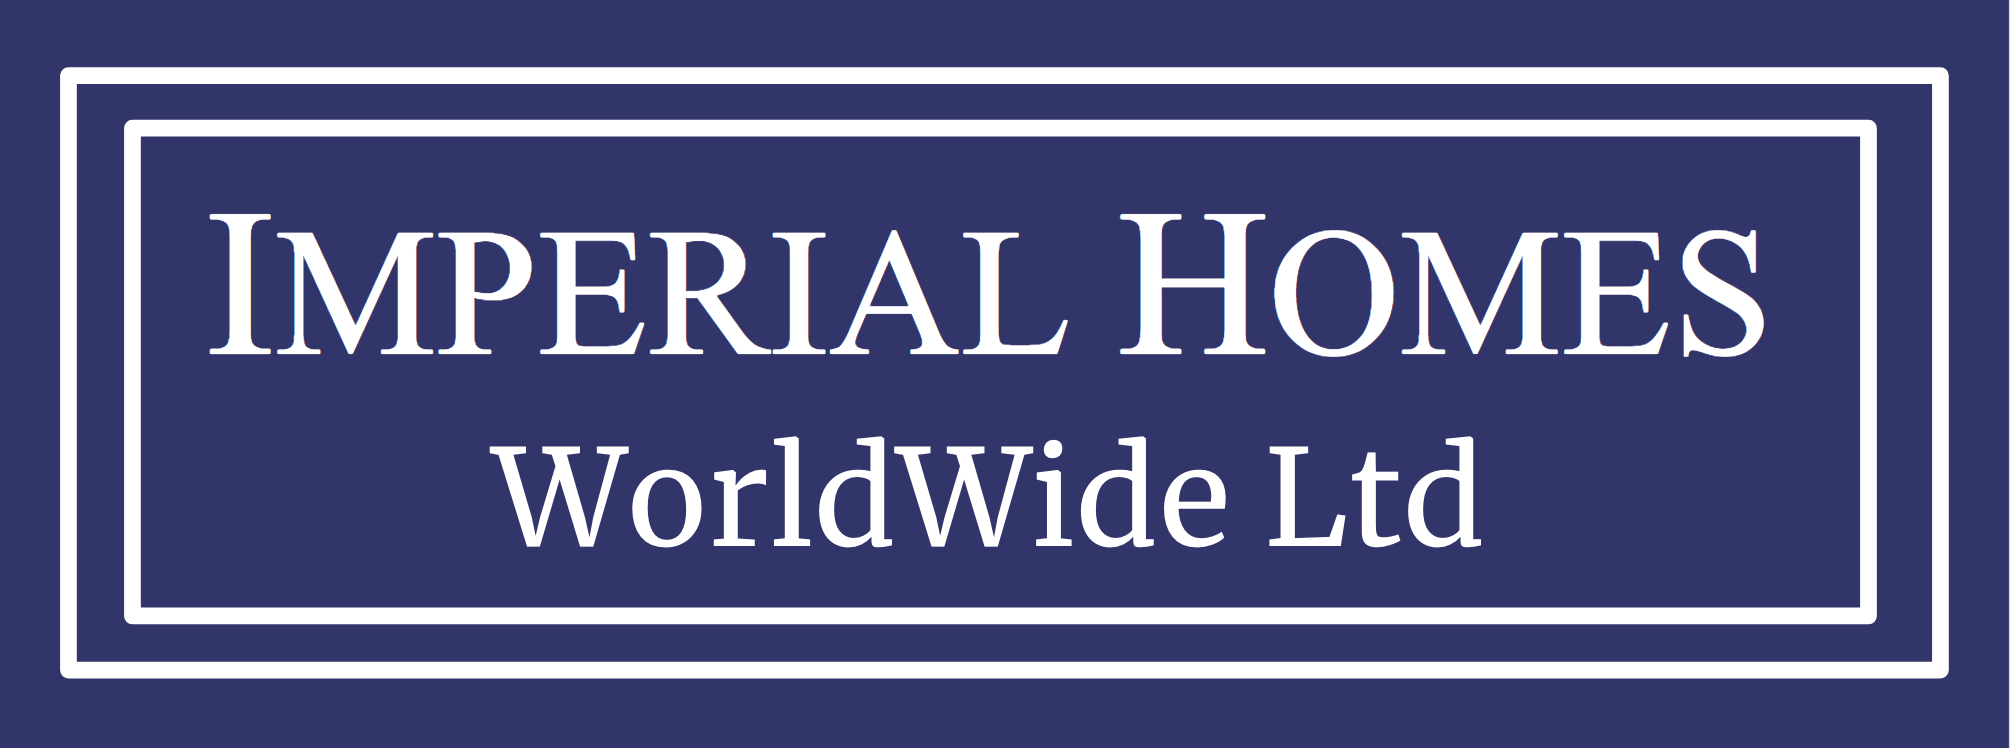 Imperial Homes WorldWide Ltd